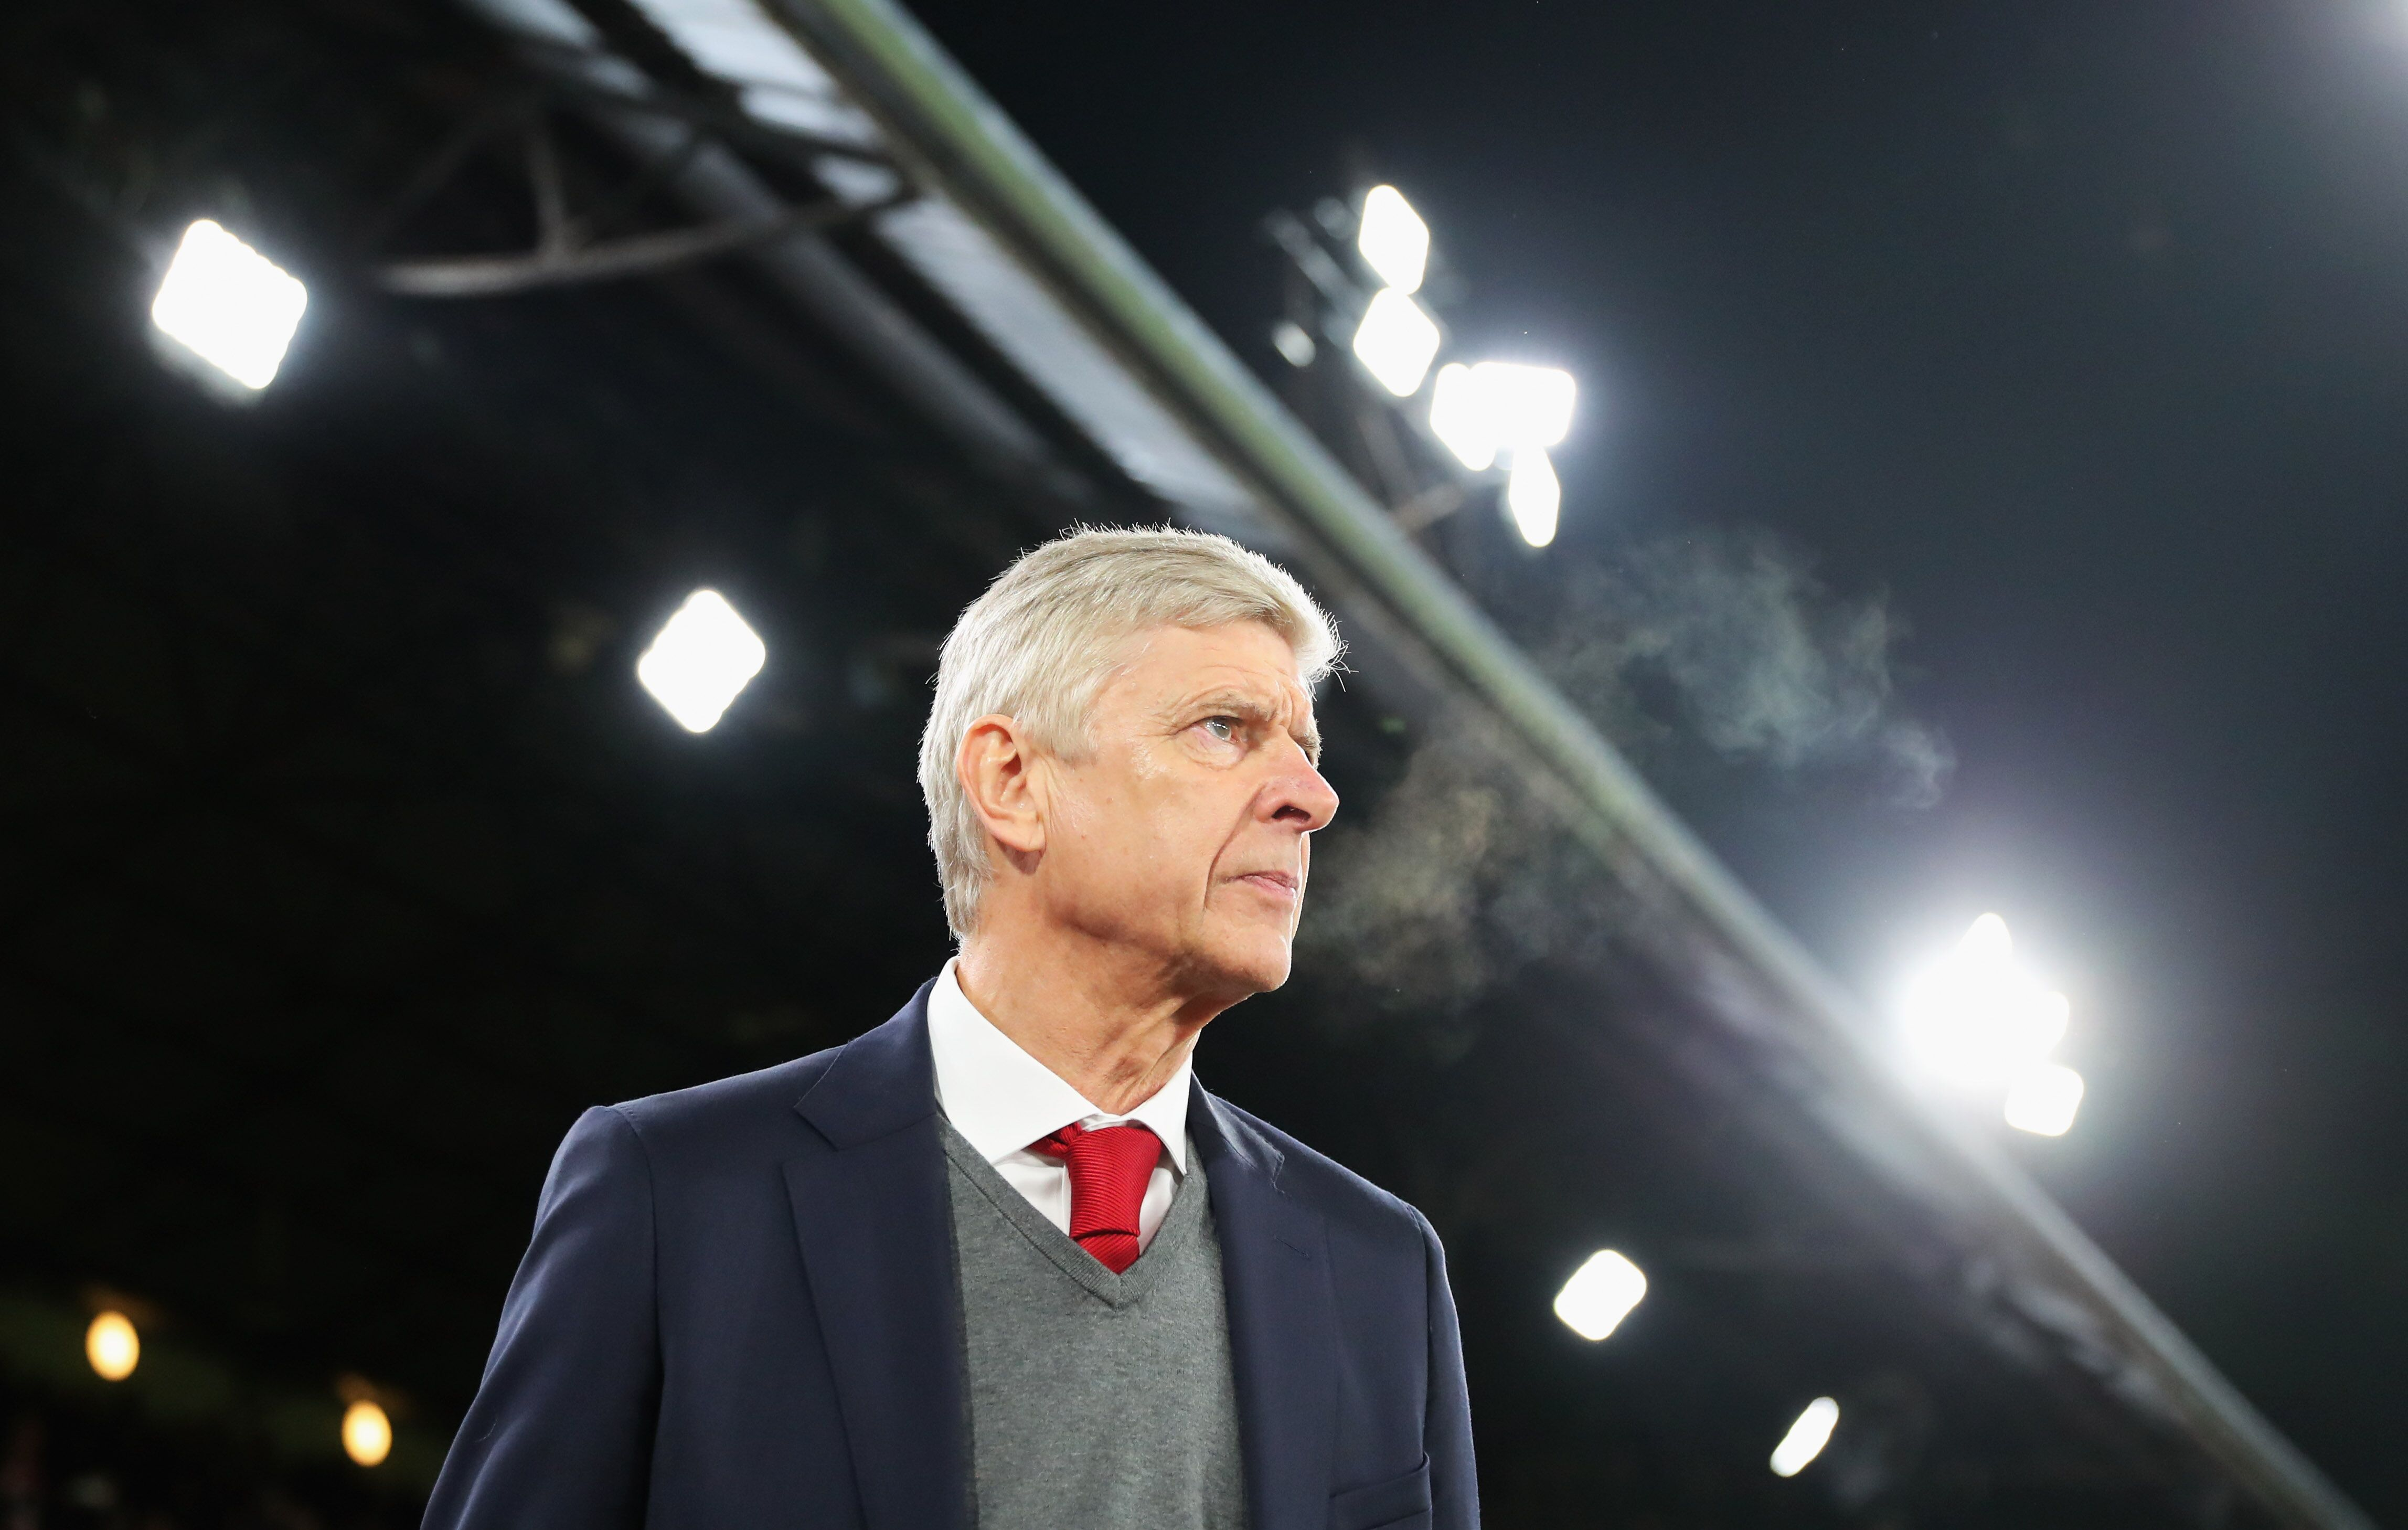 Arsenal: Why a 4-3-1-2 formation could be the way forward